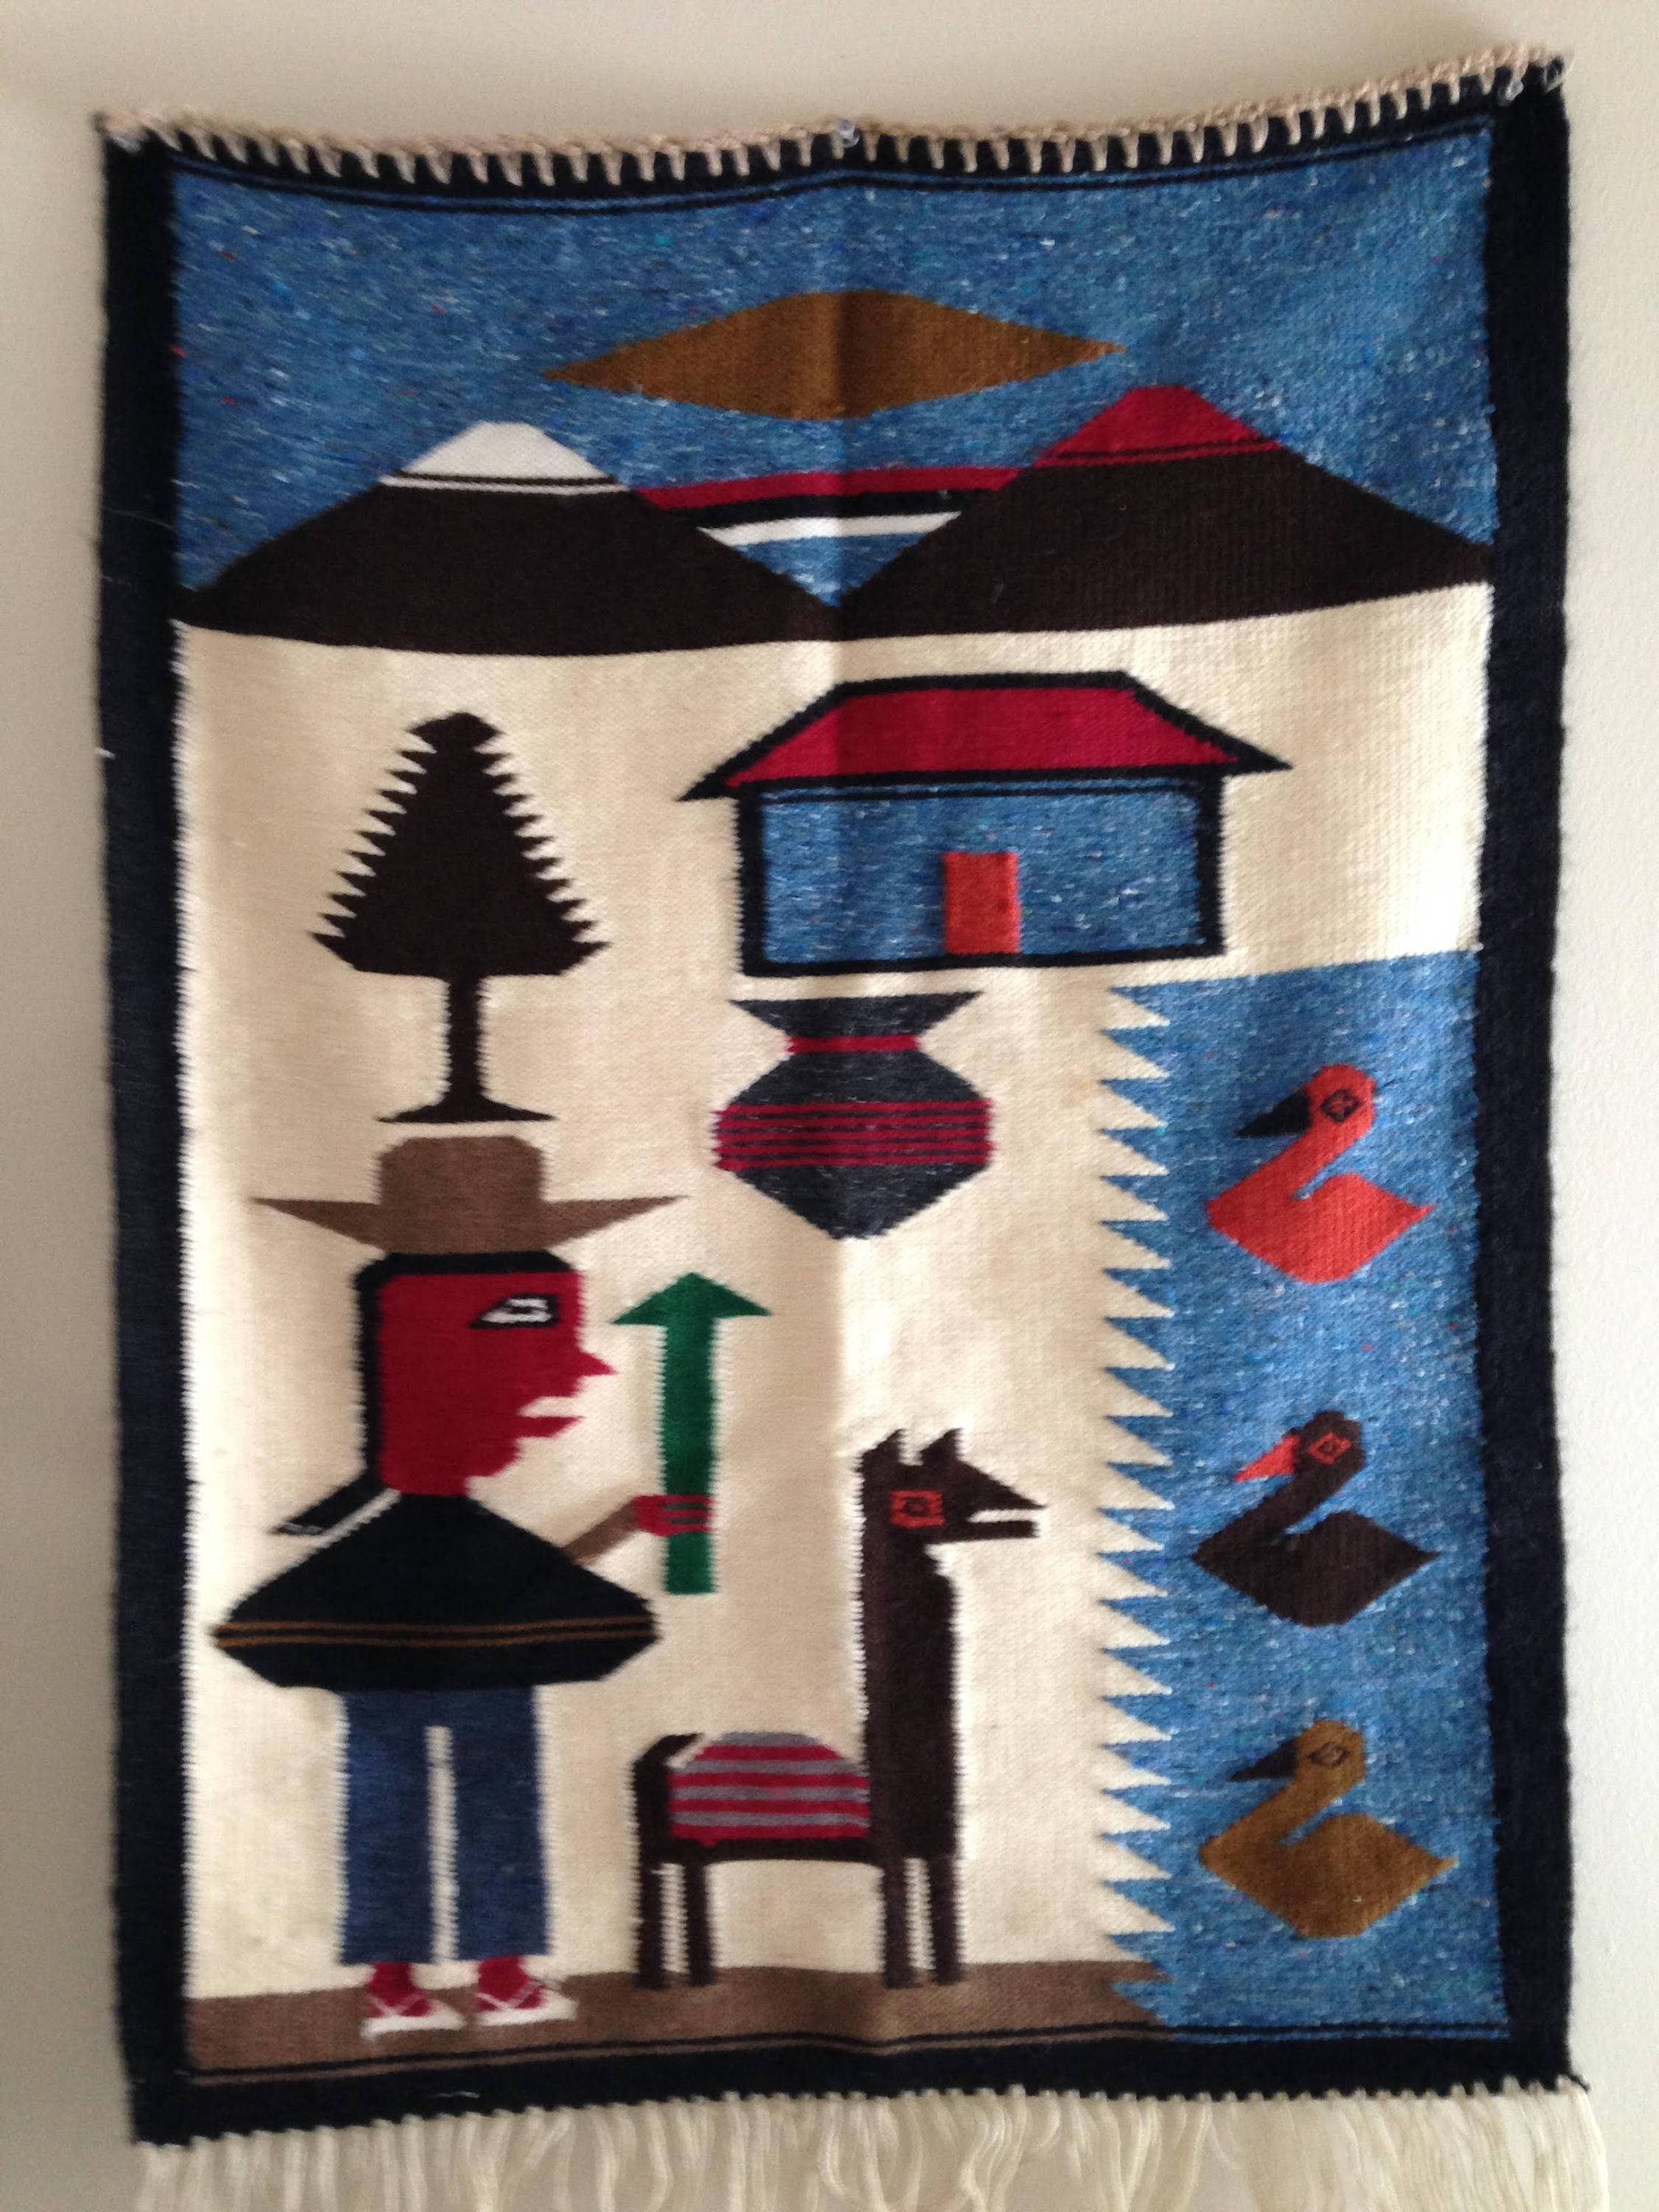 Vintage Peruvian Woven Colorful Wool Wall Hanging Rug Hand Throughout Recent Peruvian Wall Art (Gallery 4 of 30)